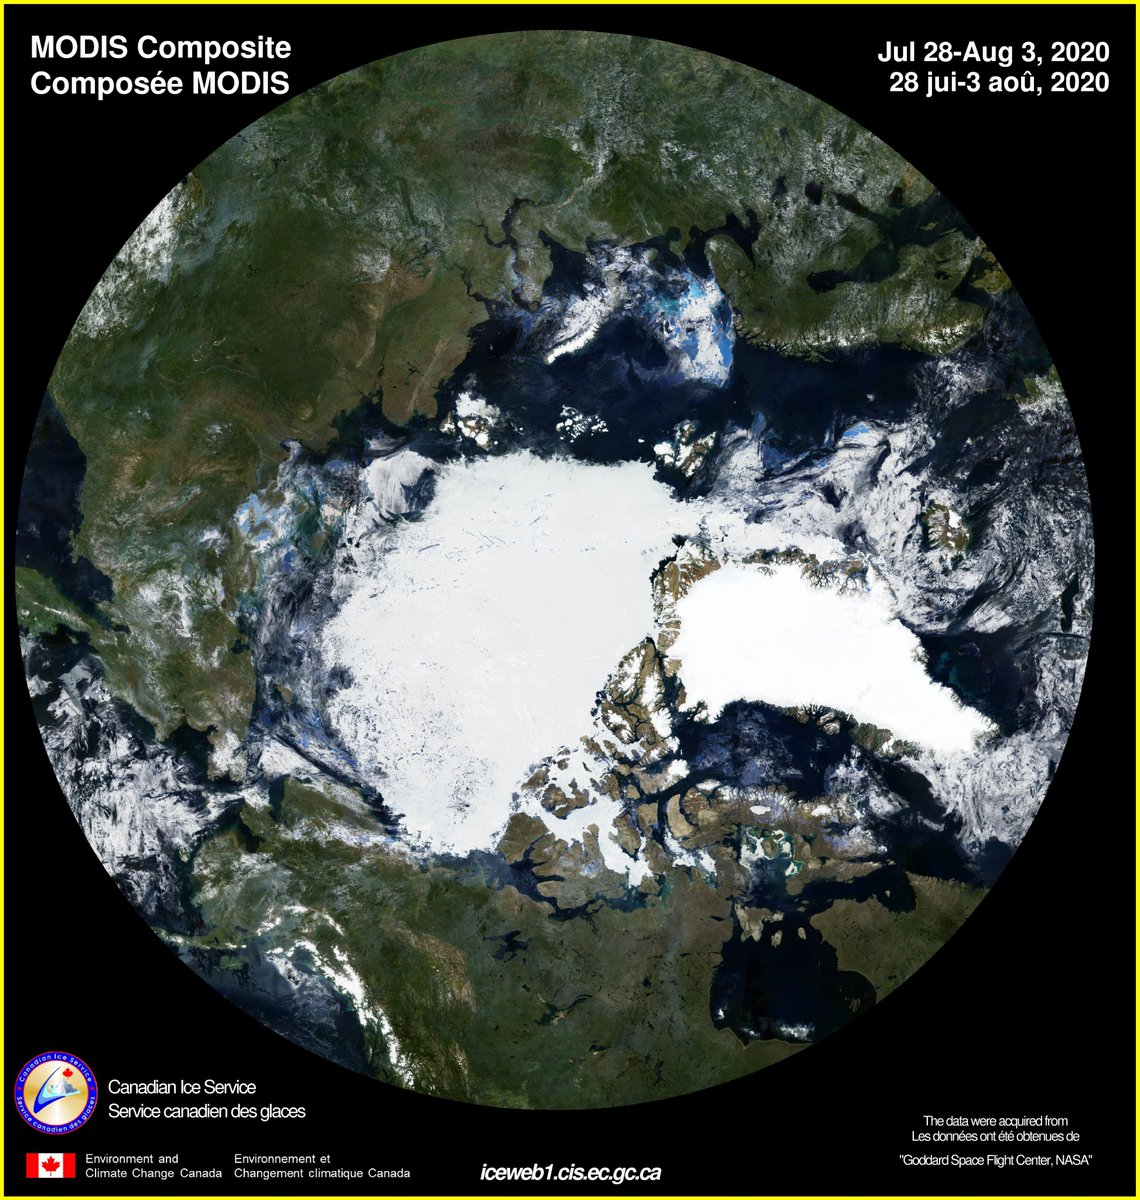 This white stuff was supposed to be all gone years ago, according to the #ClimateDoomsday Kooks which include the taxpayer-funds enriched scientists.  In reality, #ArcticIce Levels are as high as ever (actually the highest in 8000 years), and well within natural variation.